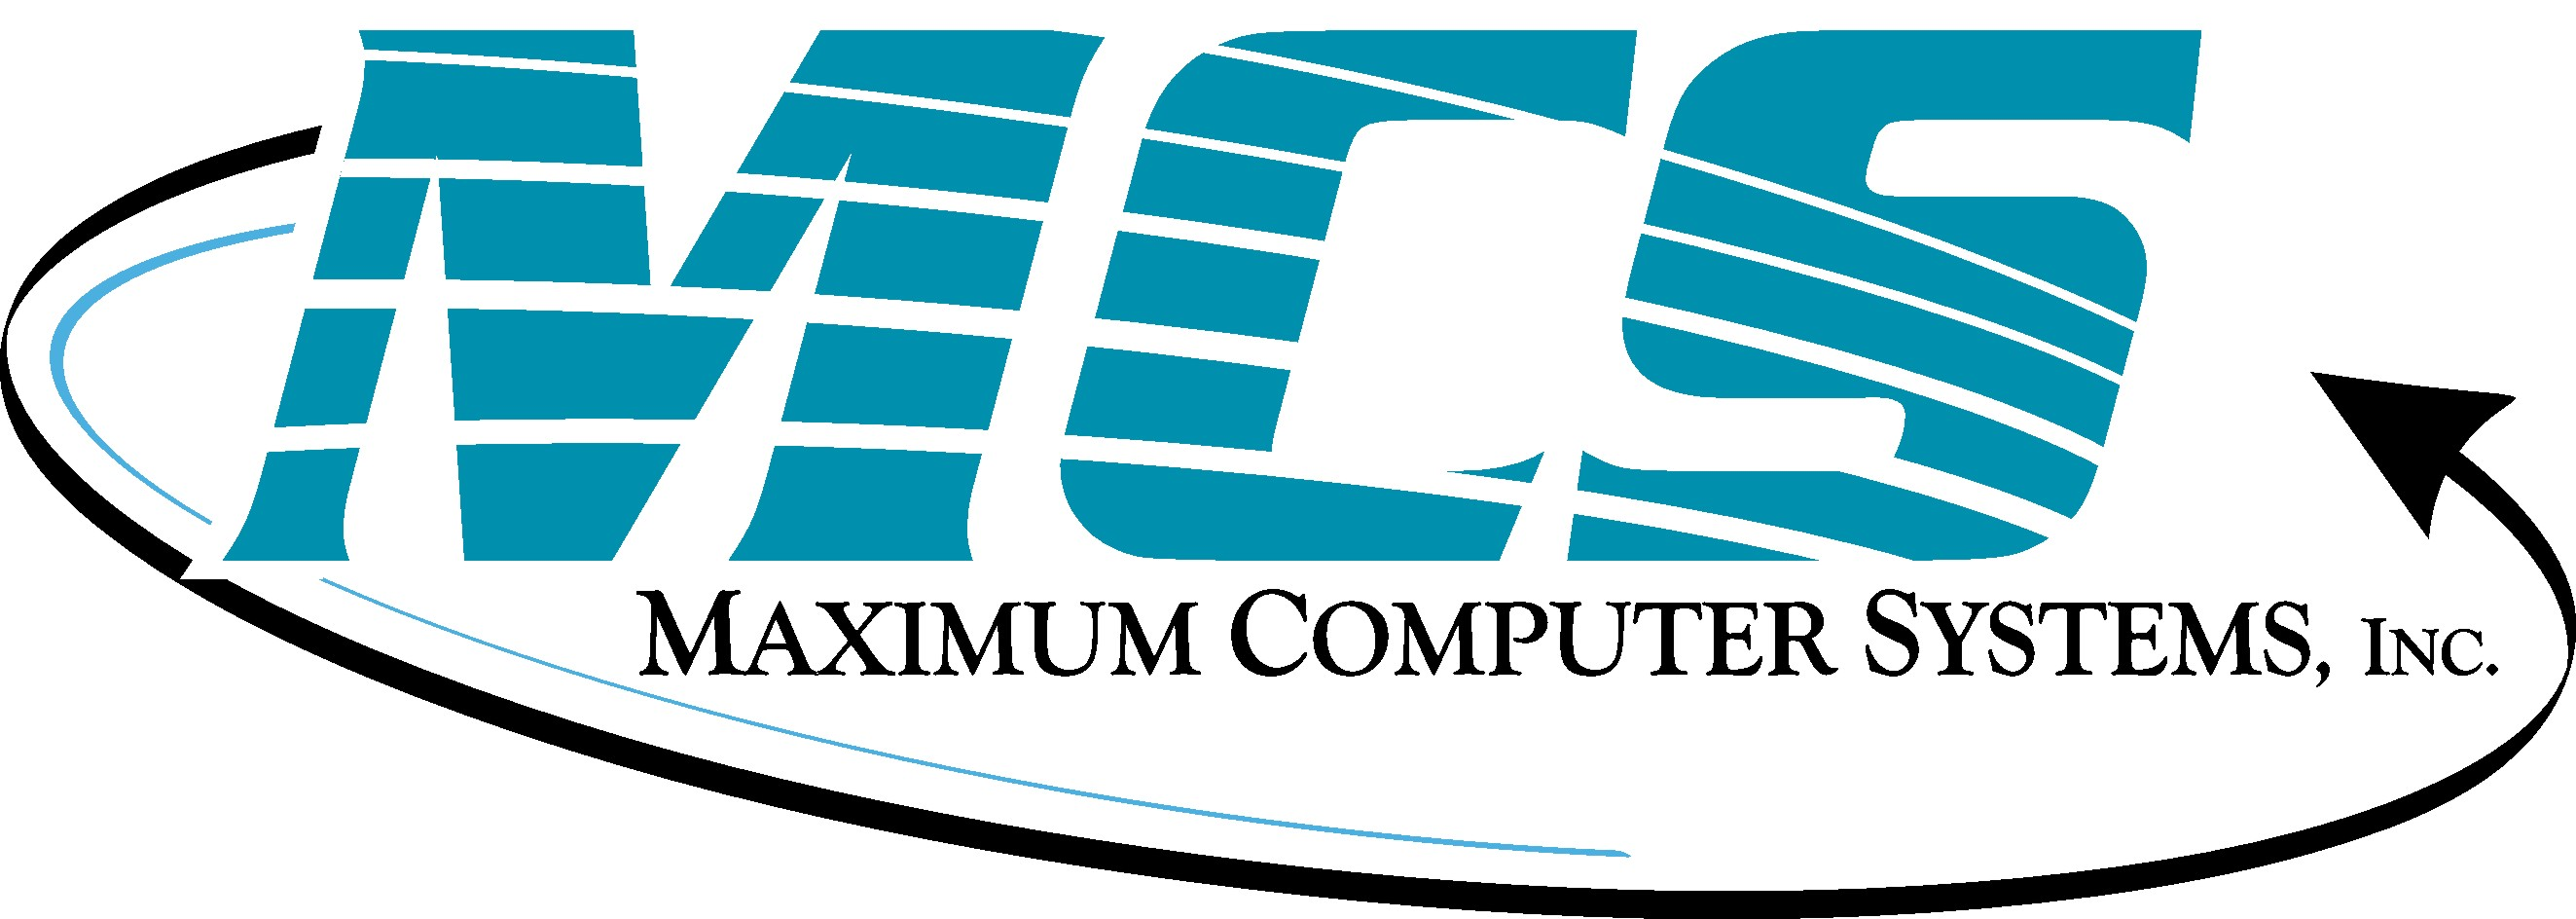 Maximum Computer Systems Inc.